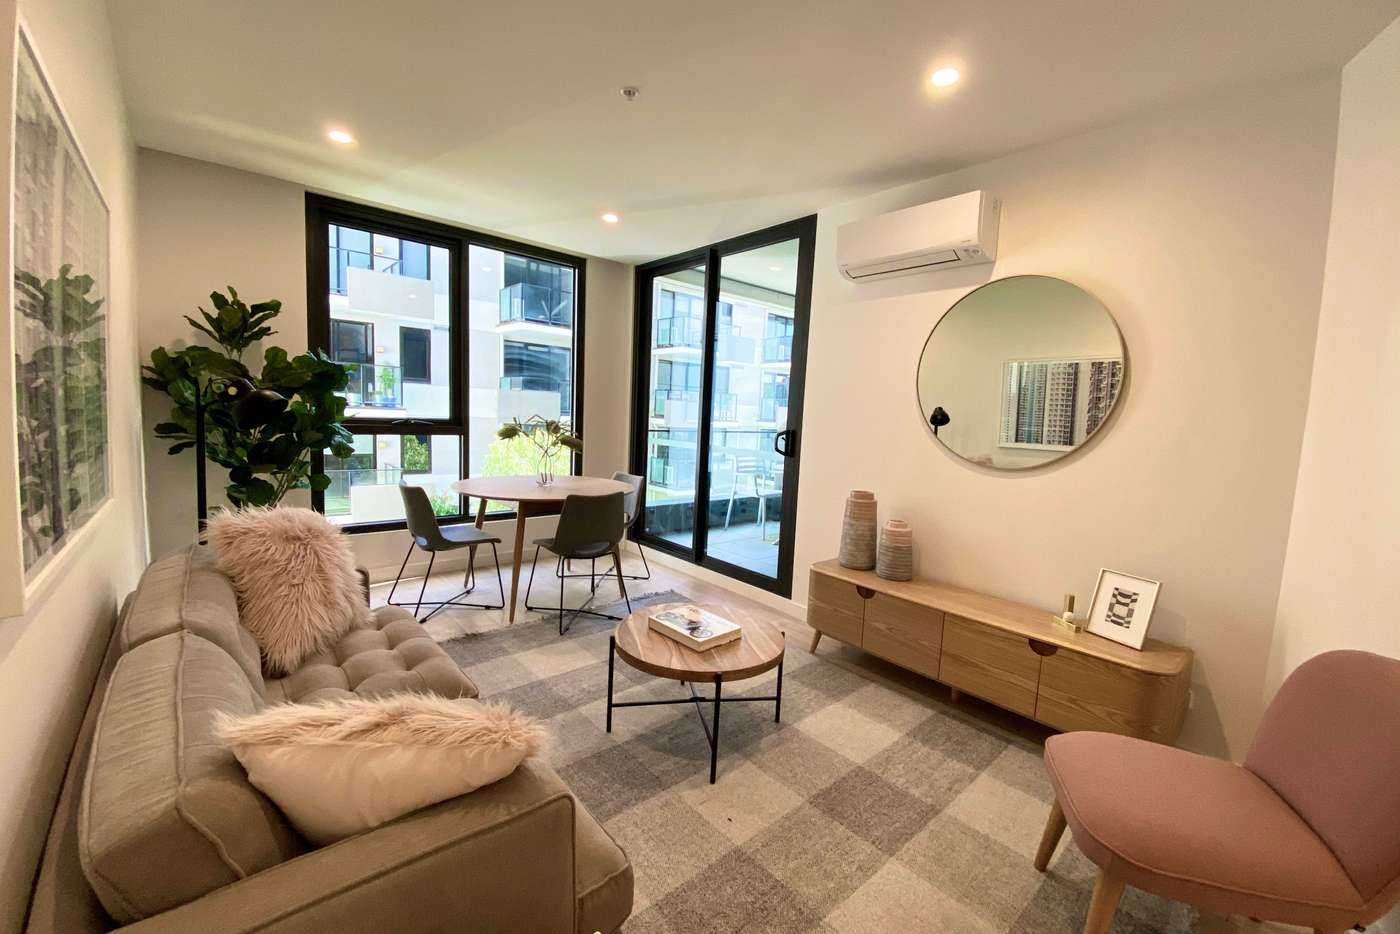 Main view of Homely apartment listing, 203/11 - 15 Brunswick Road, Brunswick East VIC 3057